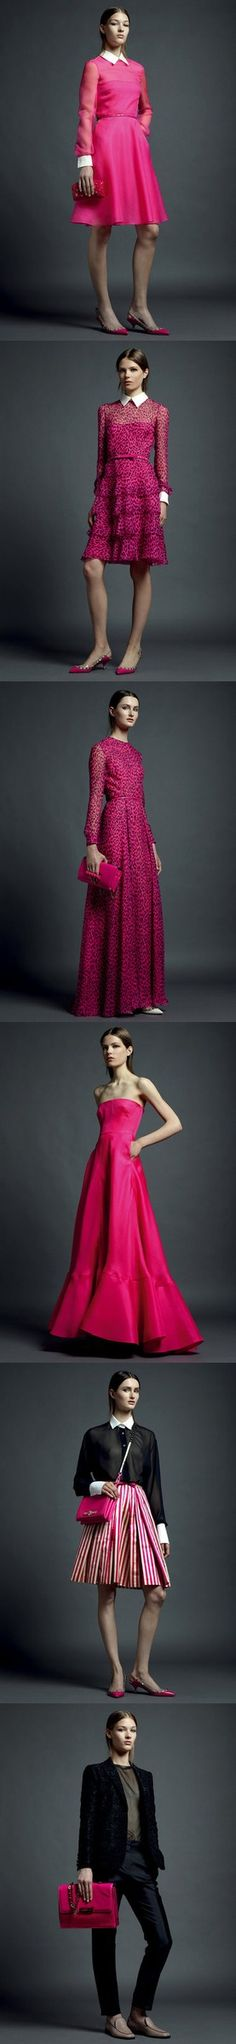 Valentino Resort 2013 - what do you think of the bold color? @Fashionologie #valentino